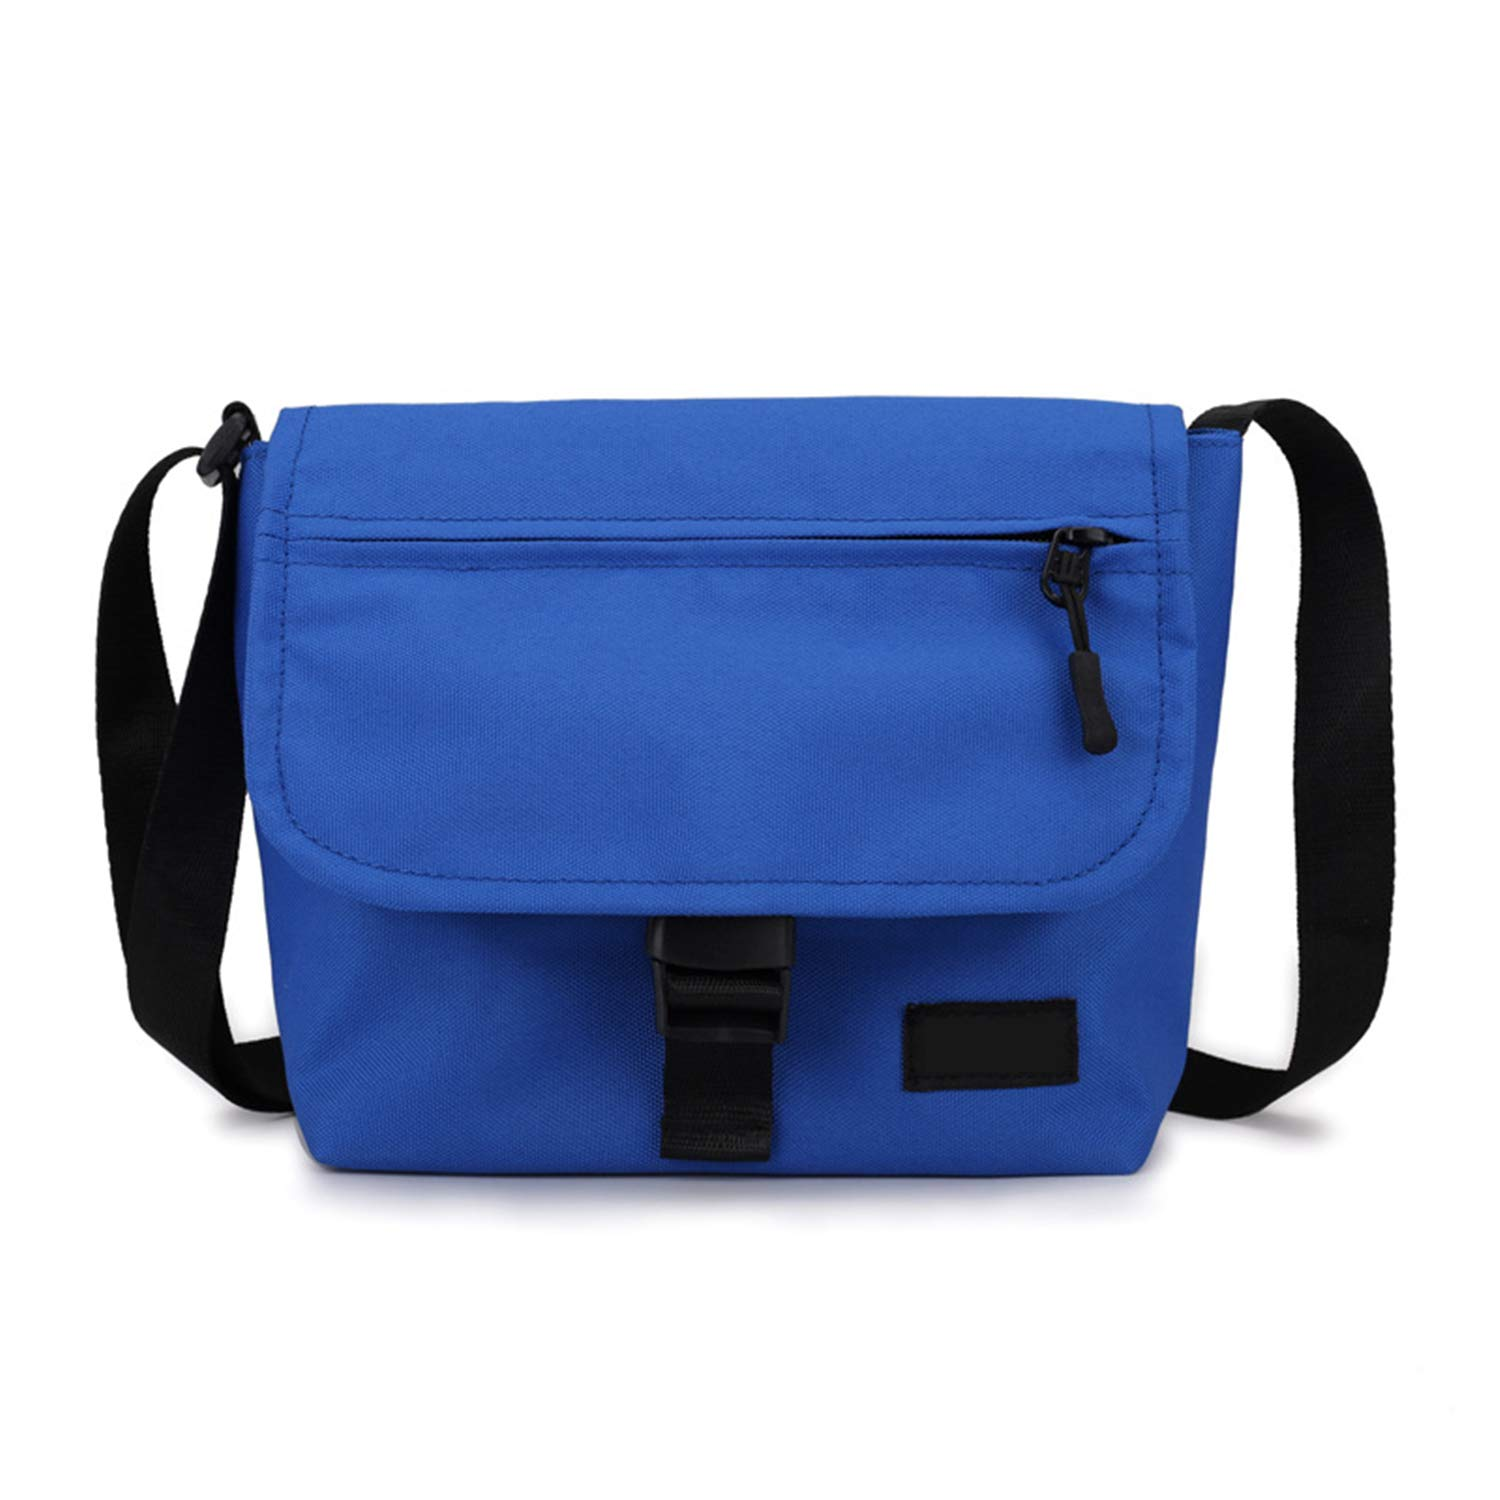 Road/&Cool Shoulder Bags Hip Hop Slung Canvas Small Square Bag Campus Couple Buckle Bag 3L Unisex Messenger Bag Nylon Coin Purse Shopping Bag